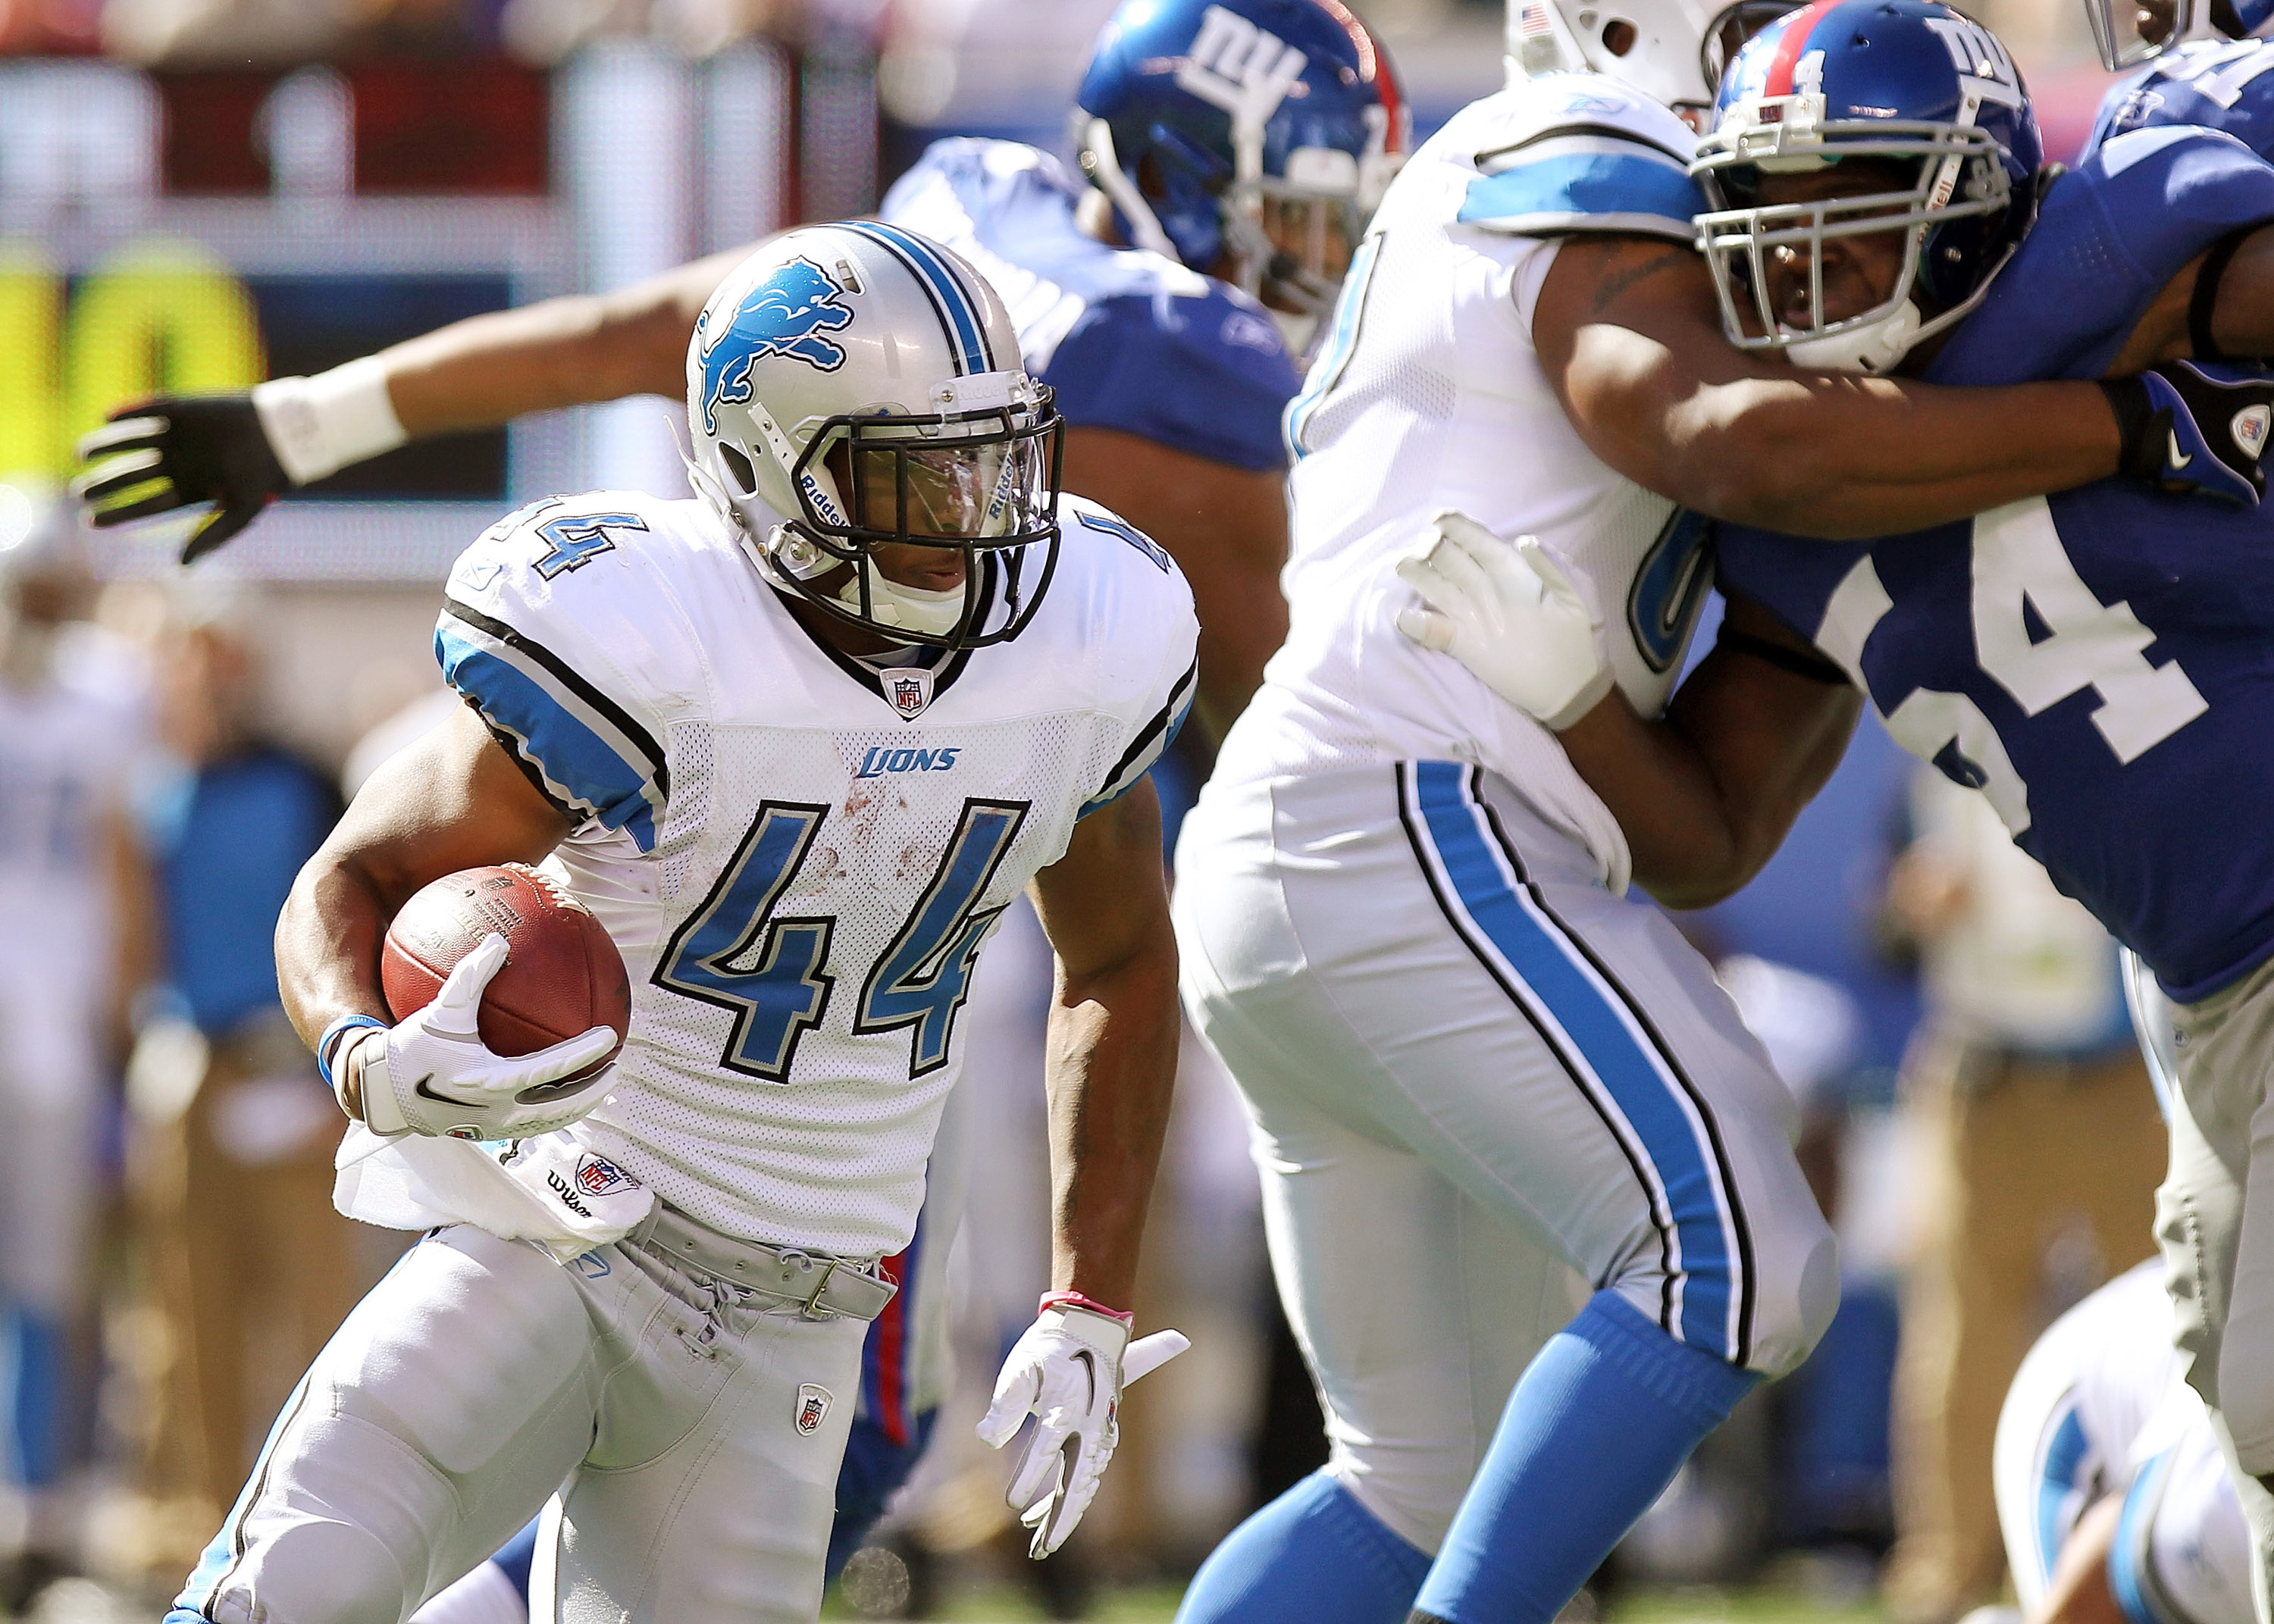 EAST RUTHERFORD, NJ - OCTOBER 17: Jahvid Best #44 of the Detroit Lions rushes against the New York Giants at New Meadowlands Stadium on October 17, 2010 in East Rutherford, New Jersey.  (Photo by Nick Laham/Getty Images)